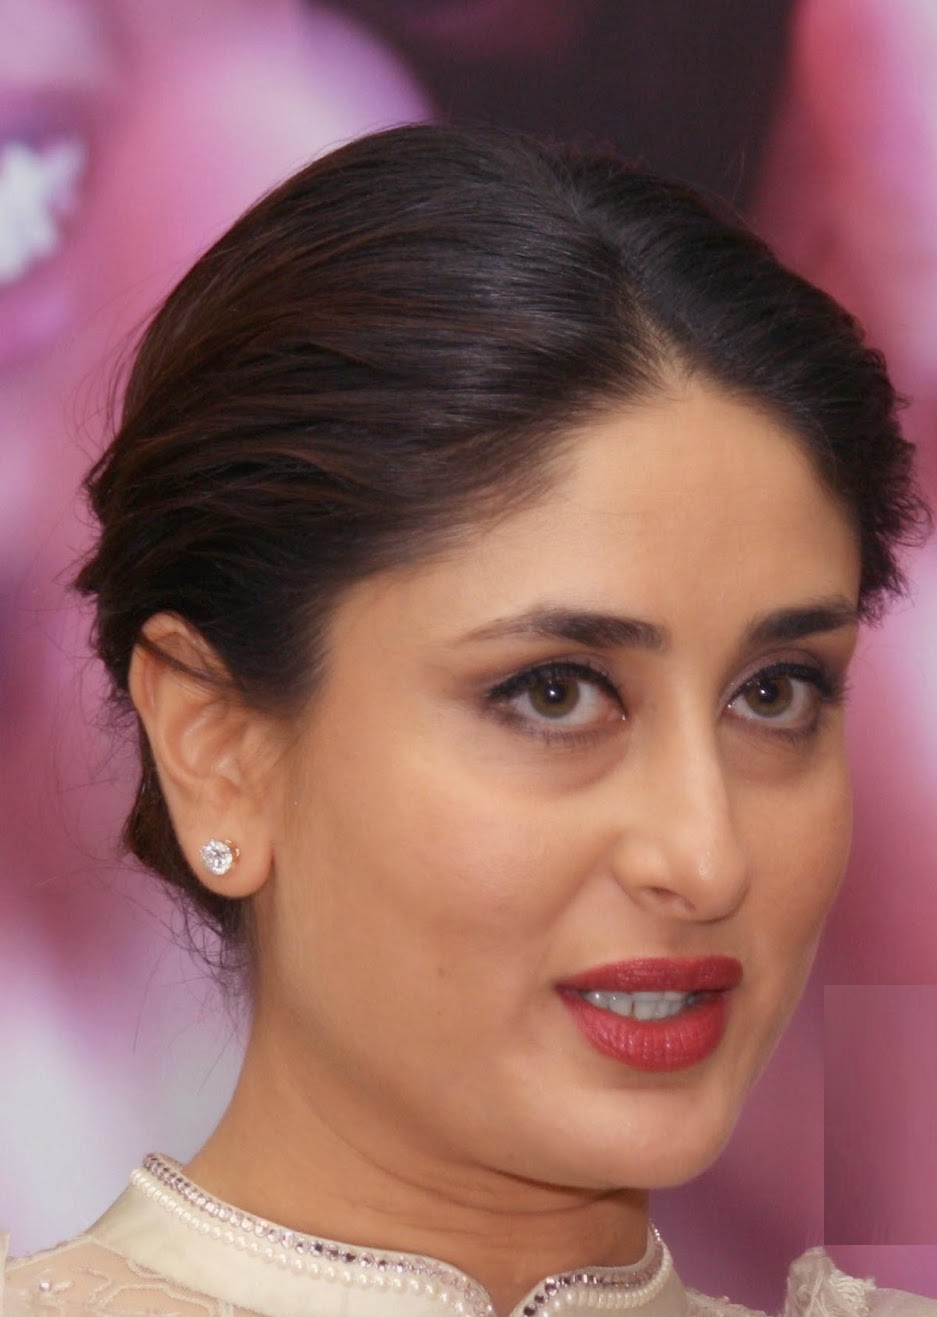 Kareena Kapoor Latest Spicy Hot Face Close Up Photos In White Dress